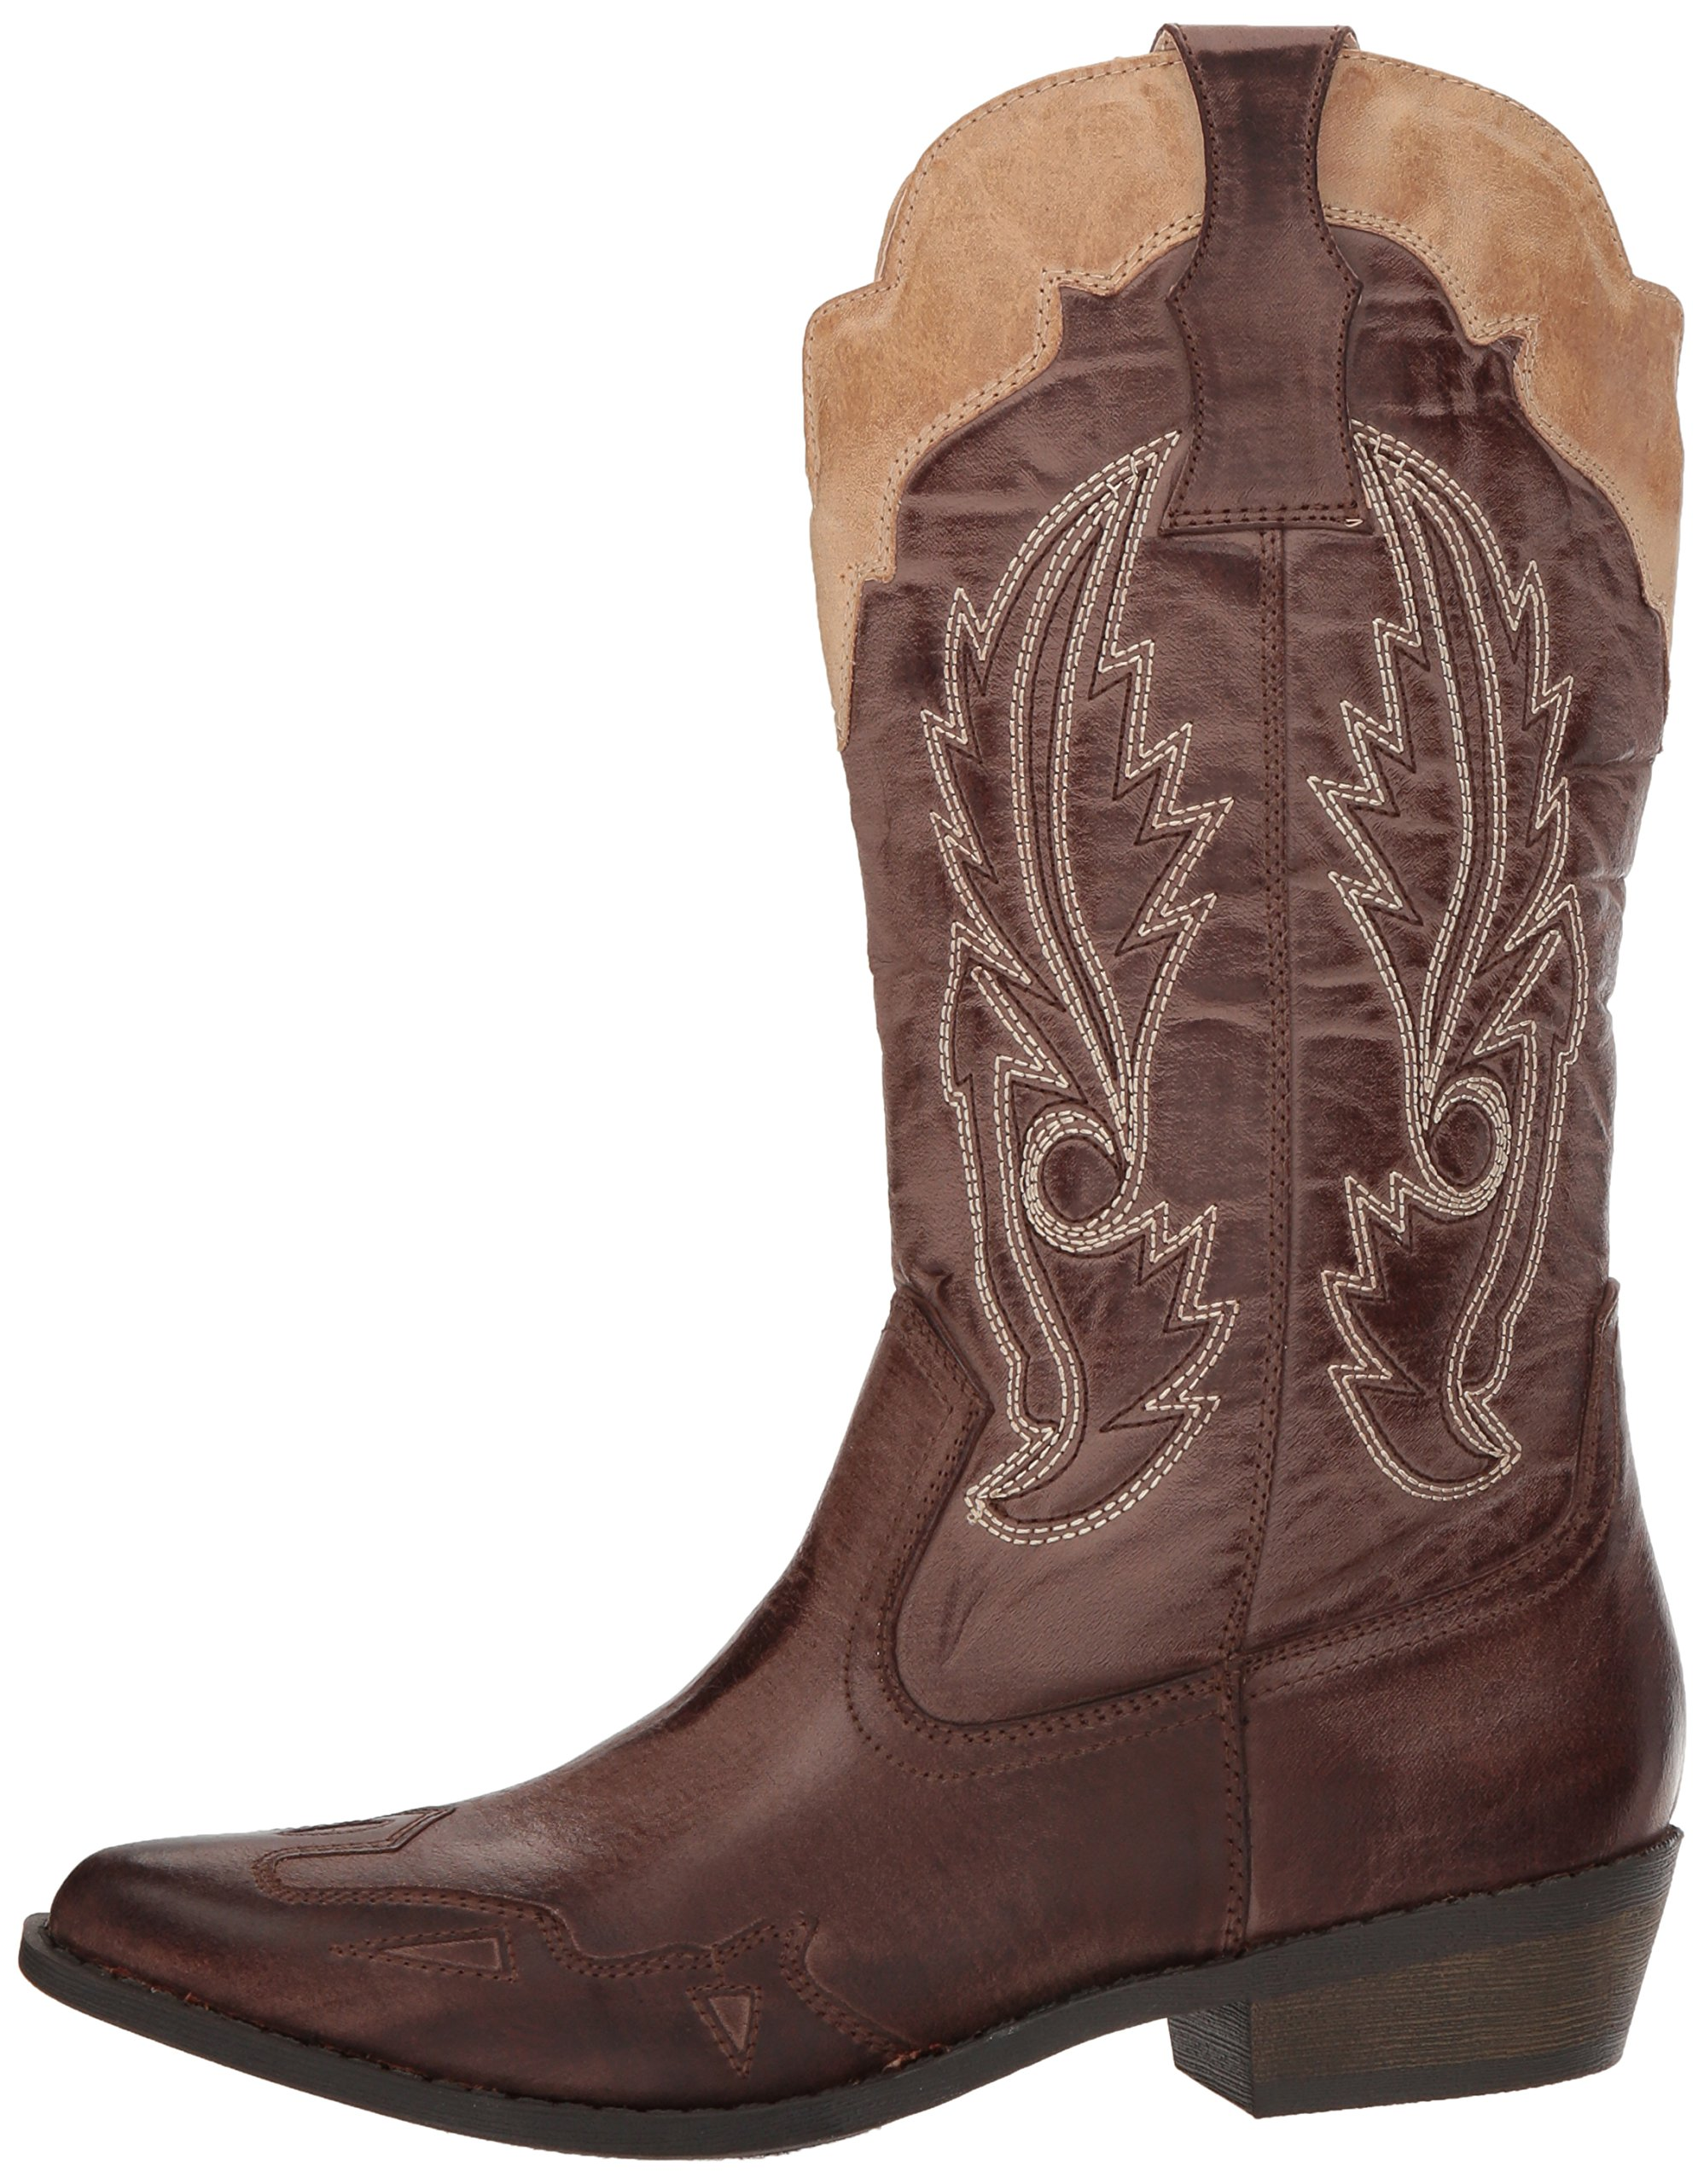 Coconuts by Matisse Women's Cimmaron Boot,Choco/Beige,10 M US by Coconuts by Matisse (Image #5)